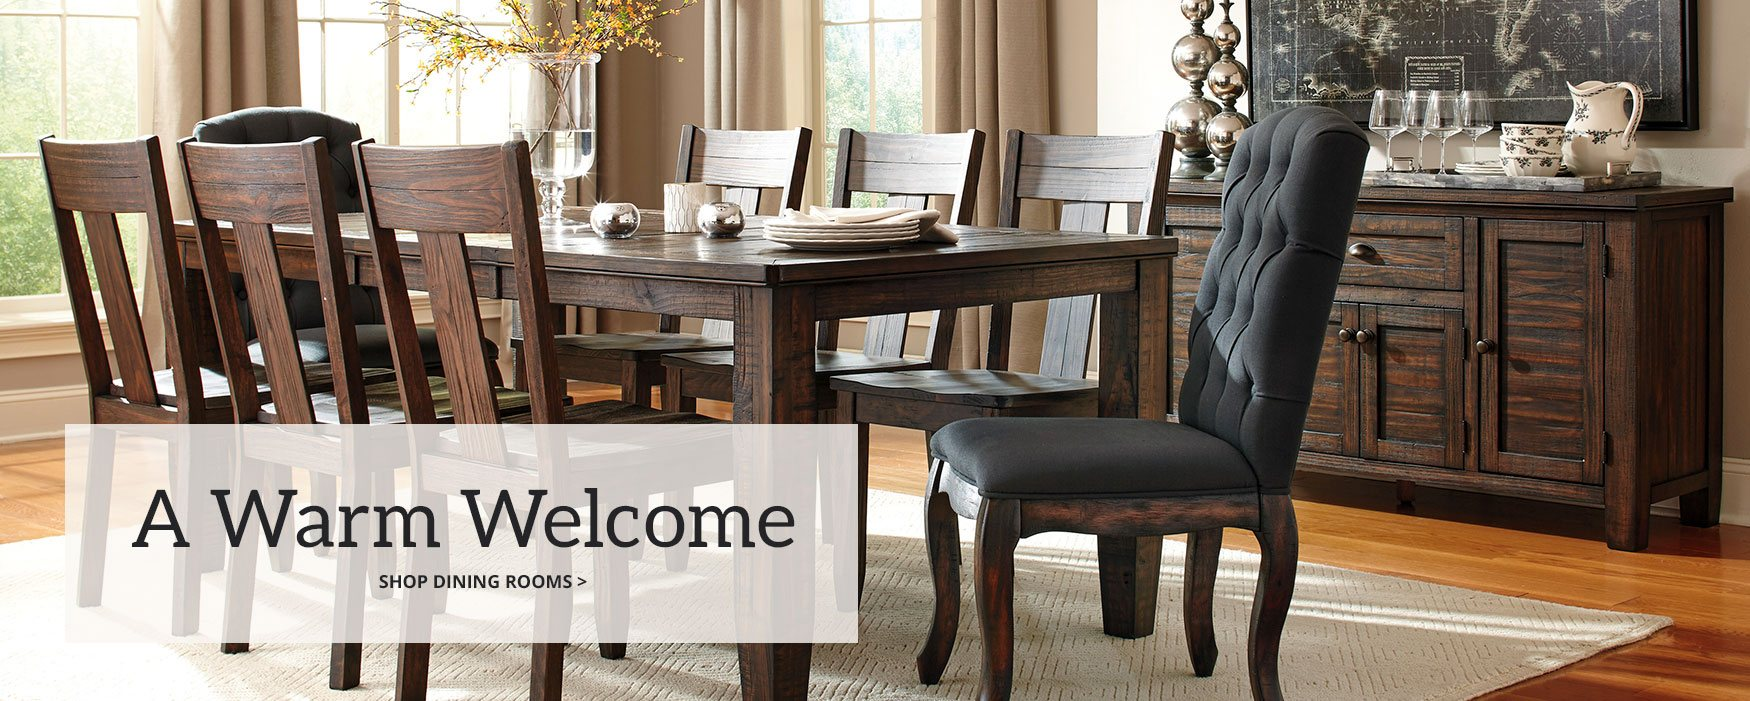 Home Decor Amp Accents Furniture In Clarksville